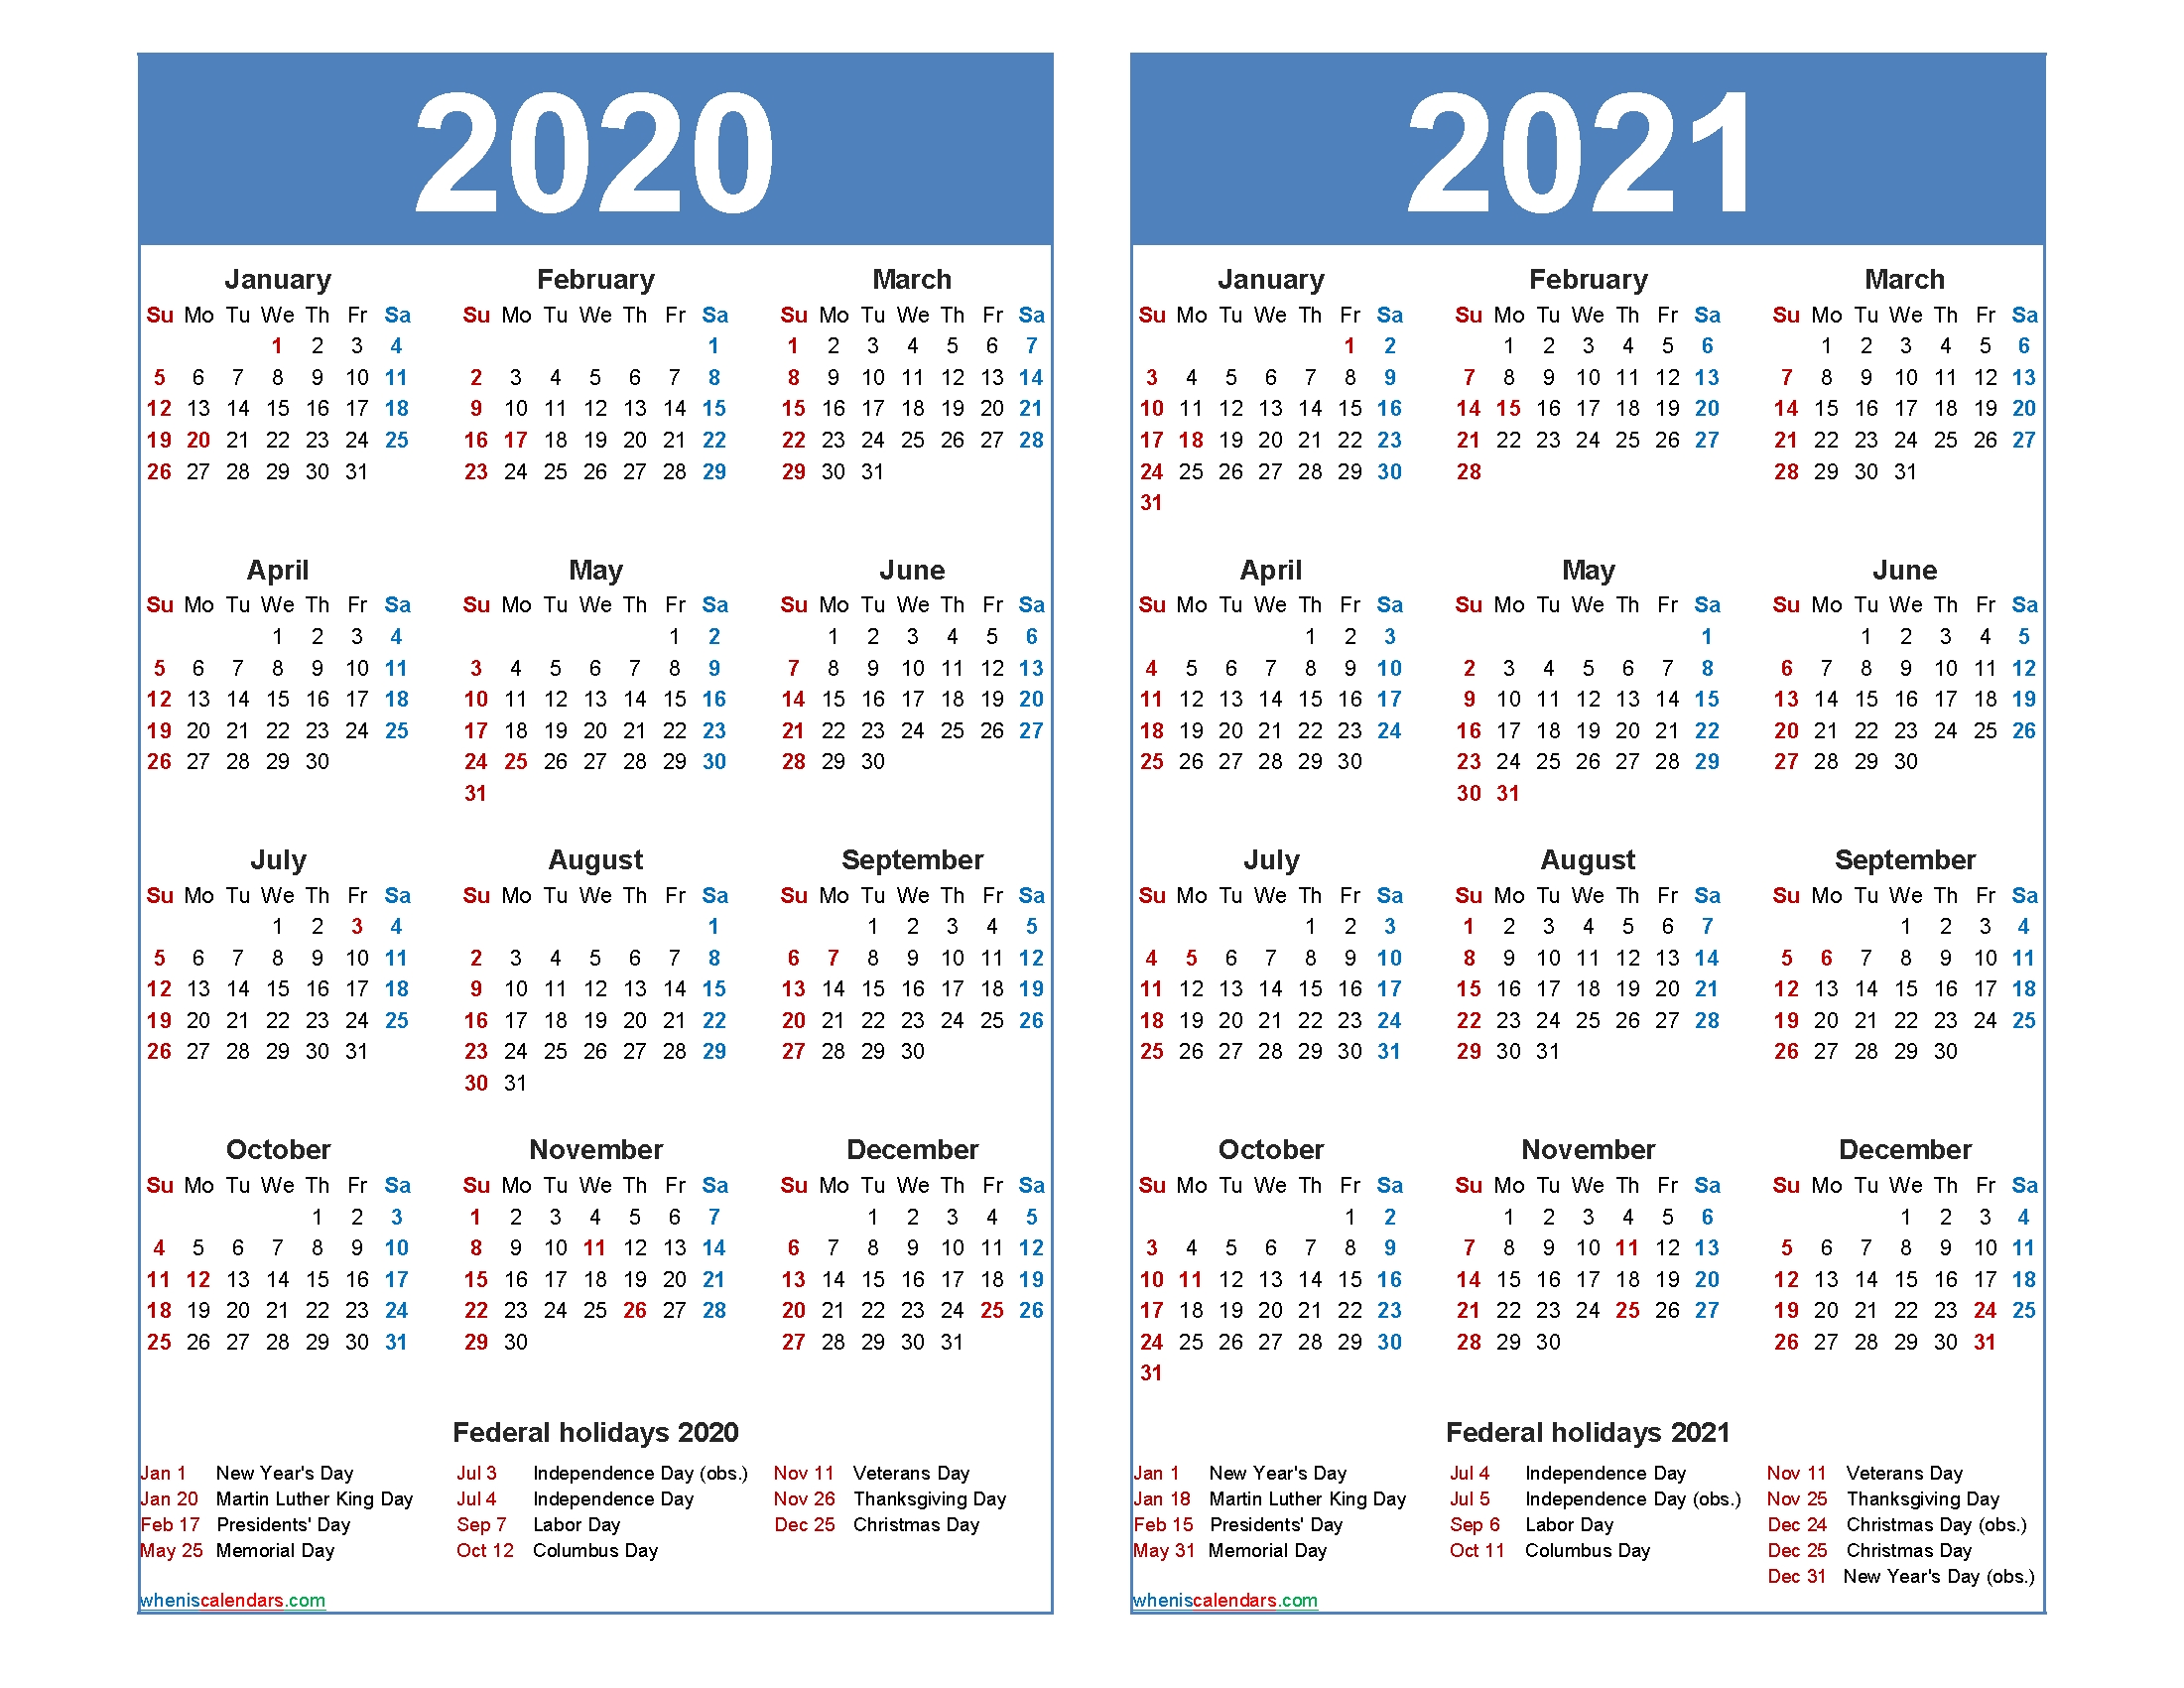 Free 2020 2021 Calendar Printable With Holidays - Free Printable 2020 Monthly Calendar With Holidays